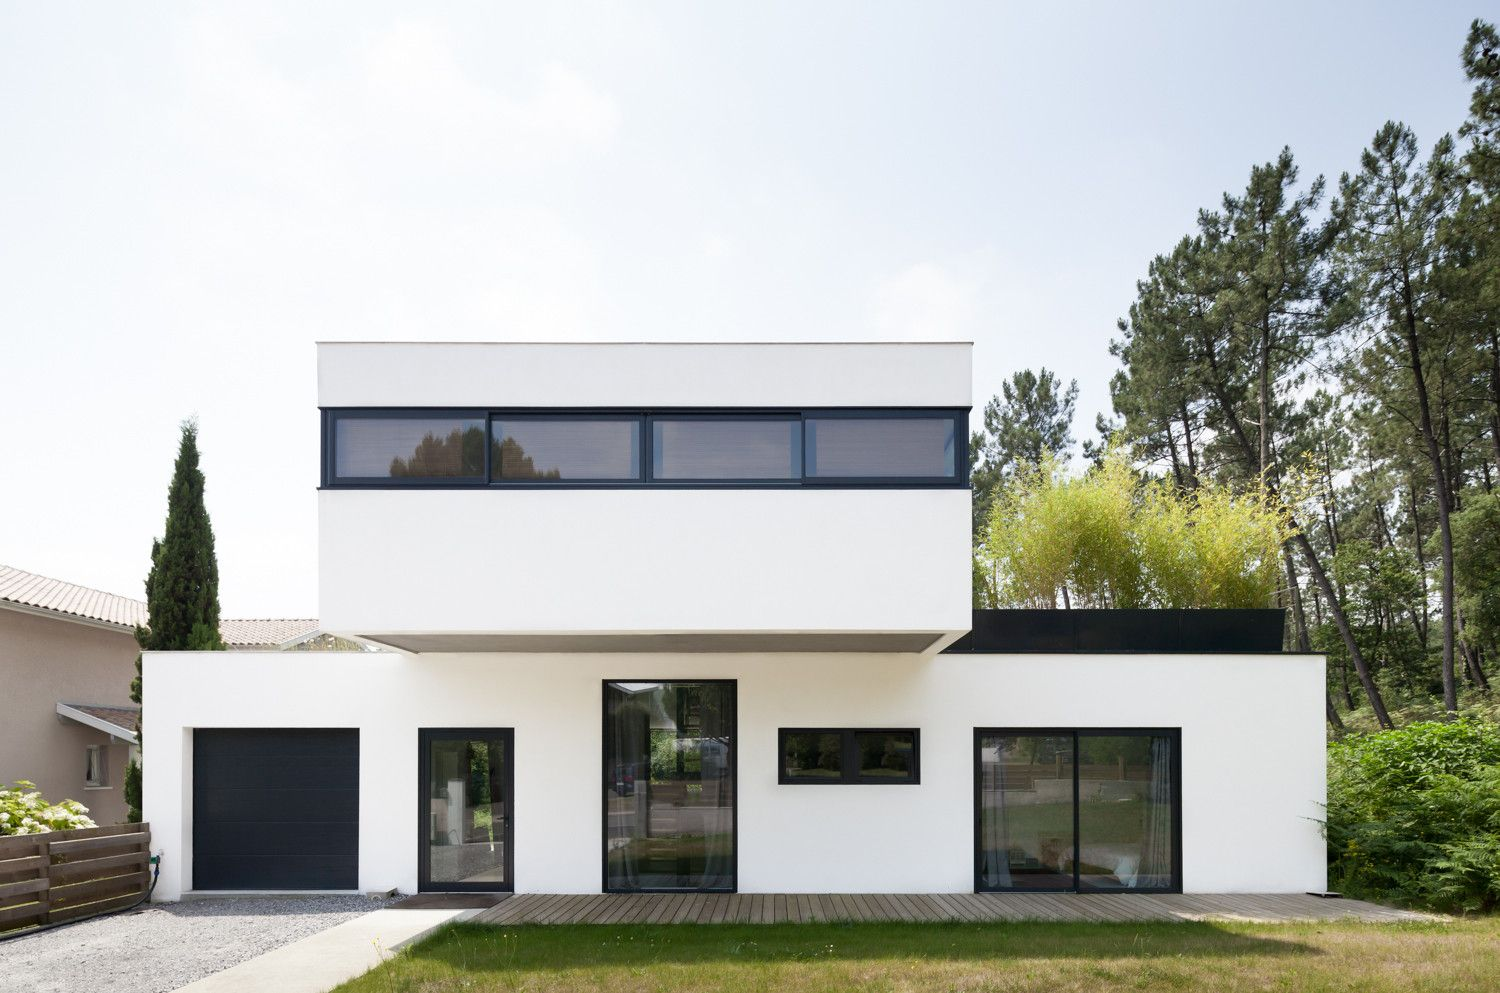 Built by debarre duplantiers associés architecture paysage in seignosse france with date 2013